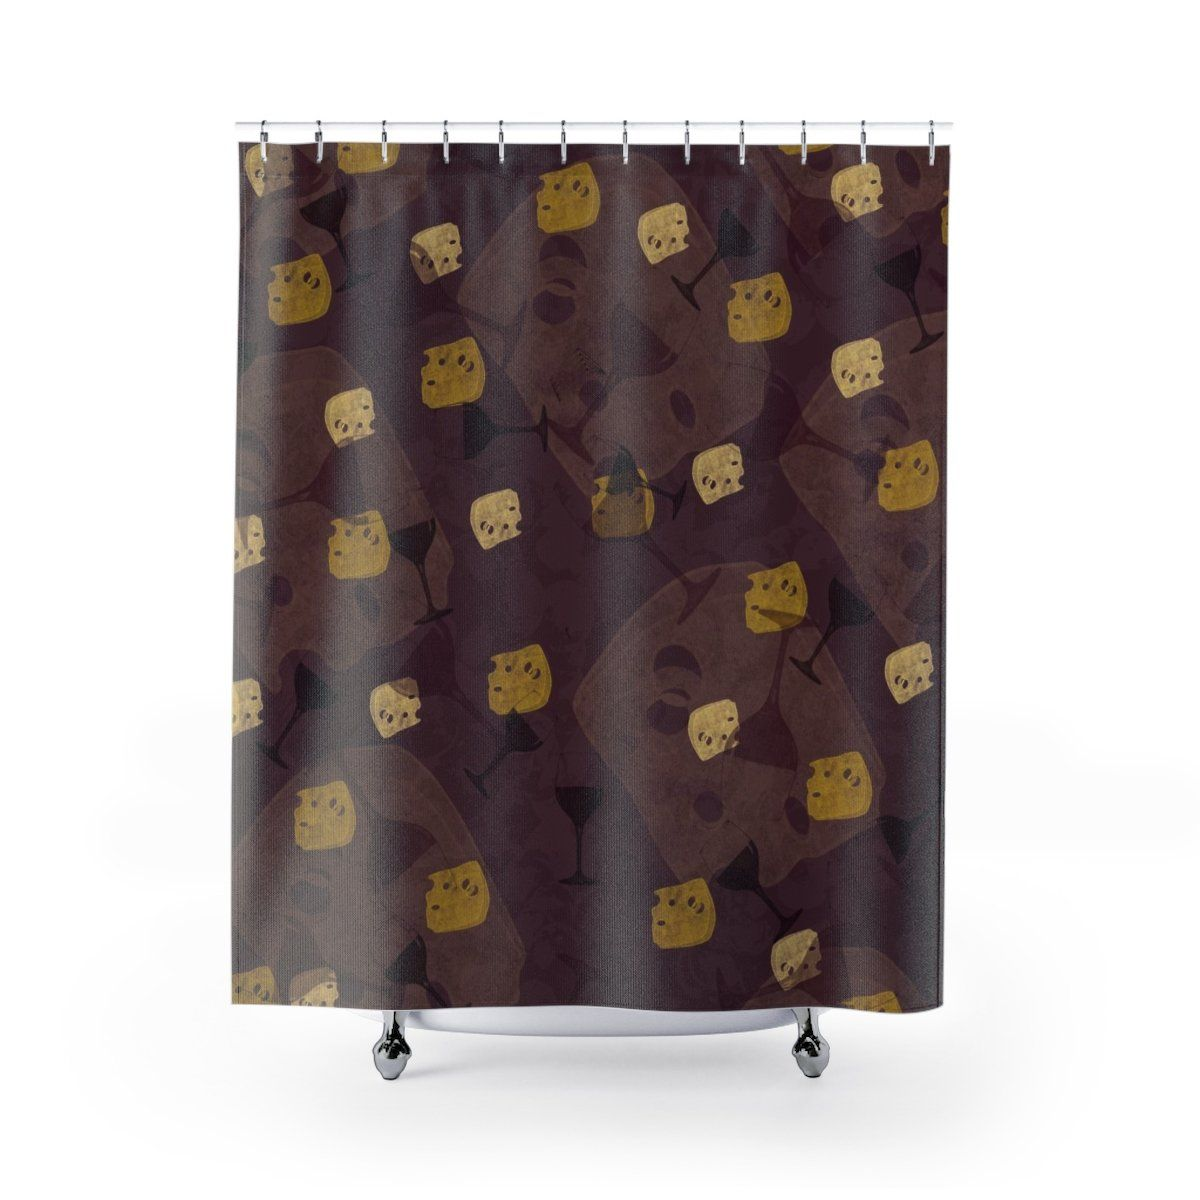 Shower Curtains Unusual Bathrooms Burgundy Wine Bathroom